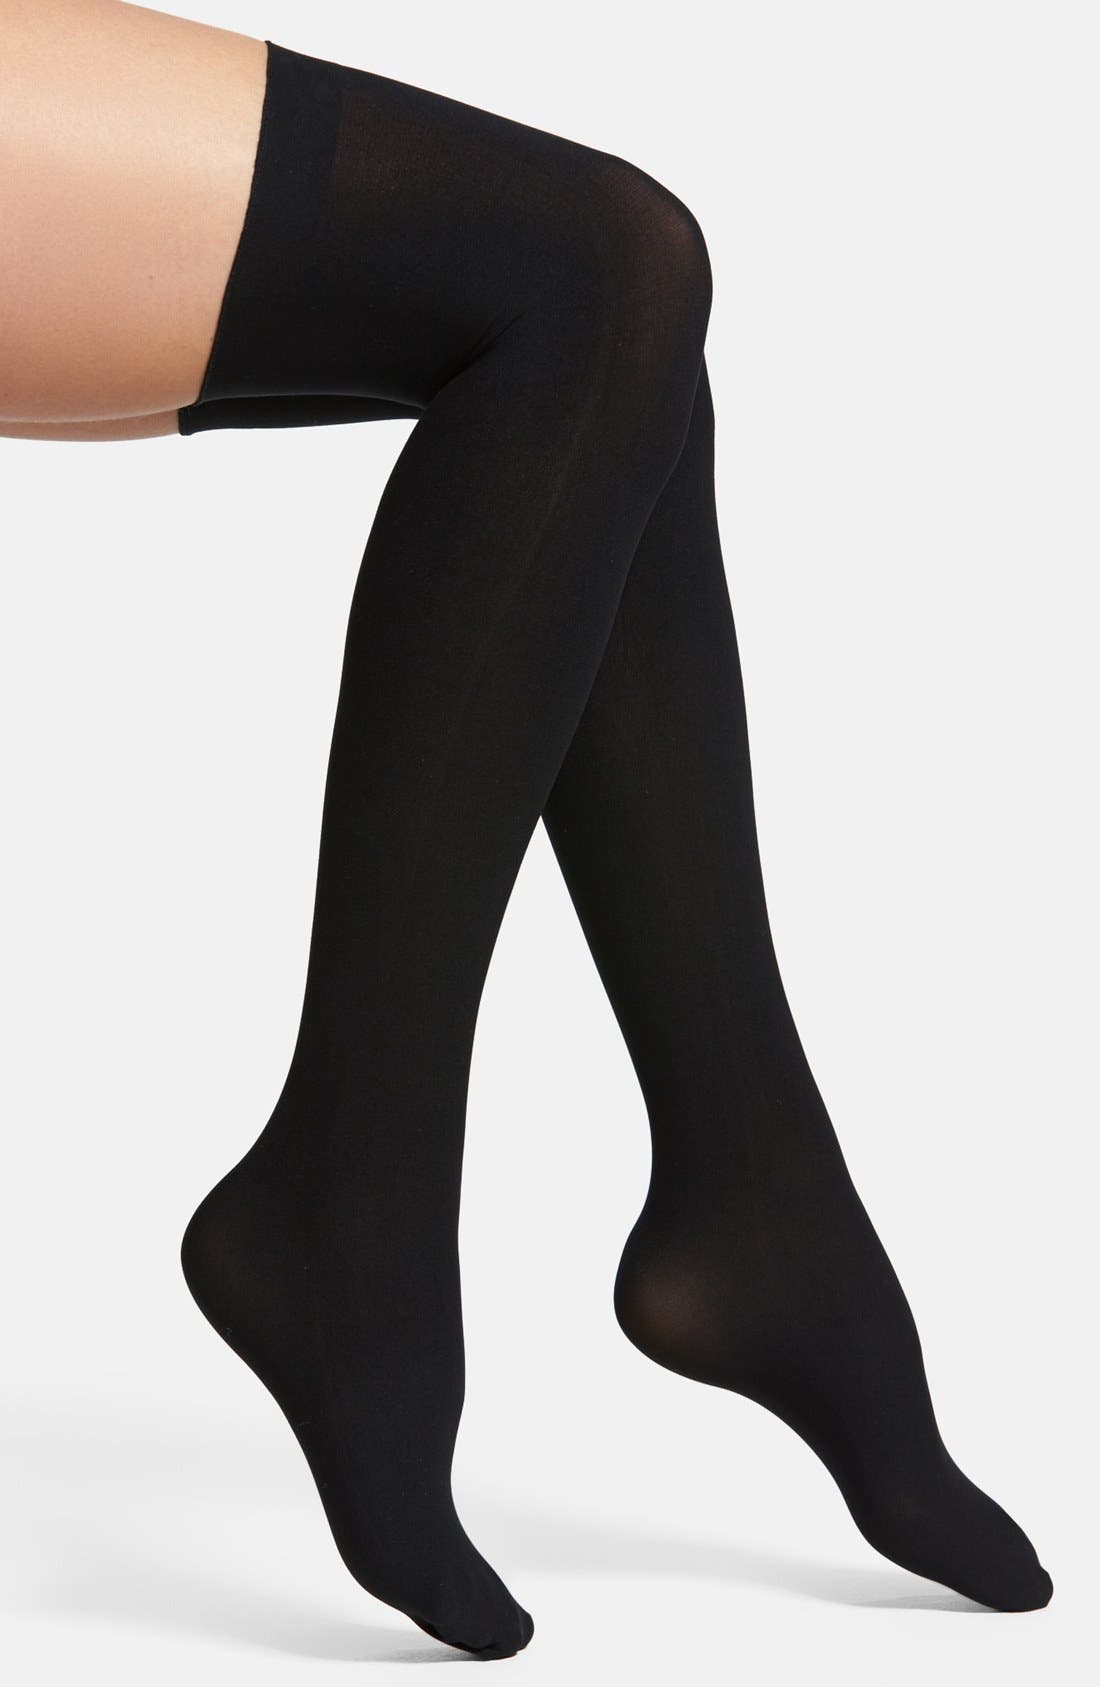 Alternate Image 1 Selected - Commando Up All Night Thigh High Socks